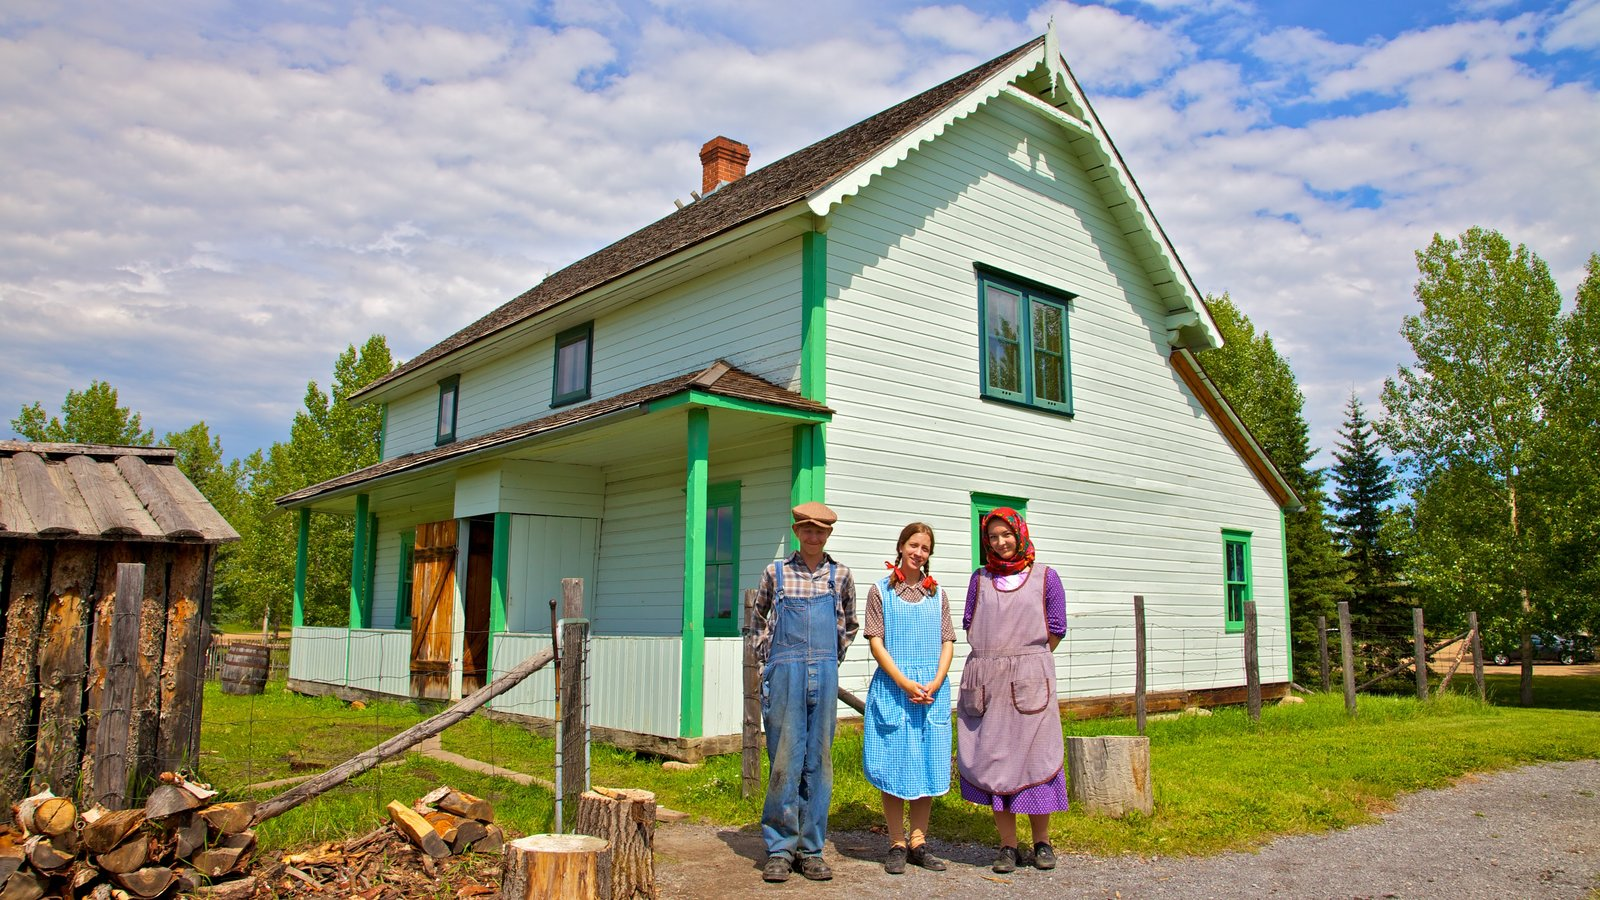 Ukrainian Cultural Heritage Village which includes heritage elements and heritage architecture as well as a family